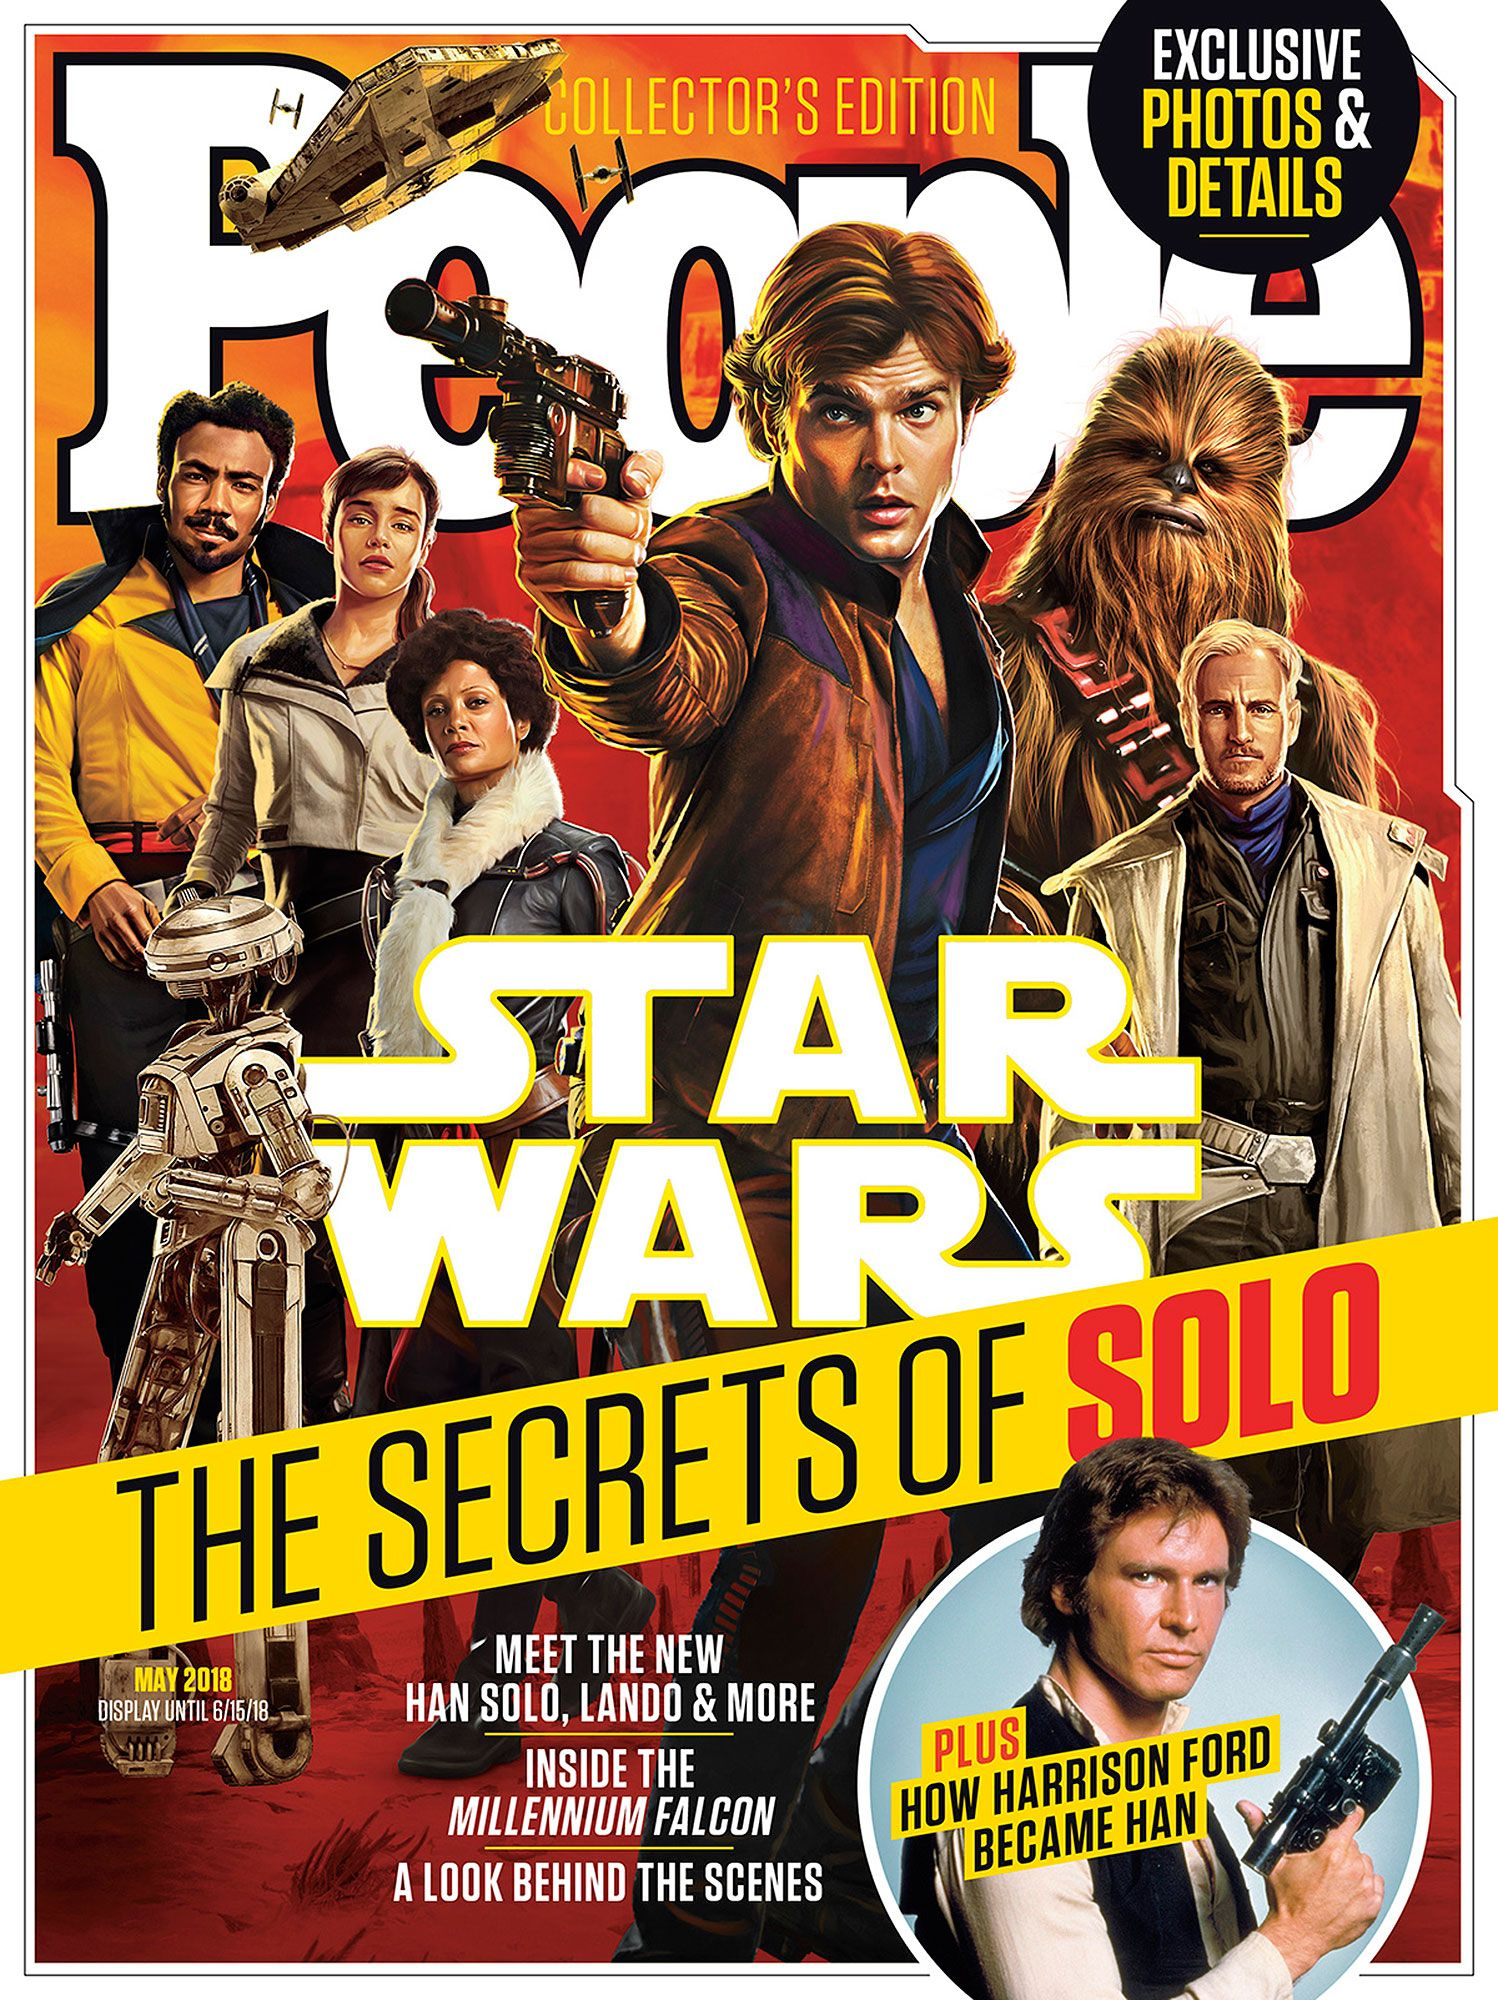 People Collector's Edition: Star Wars The Secrets of Solo